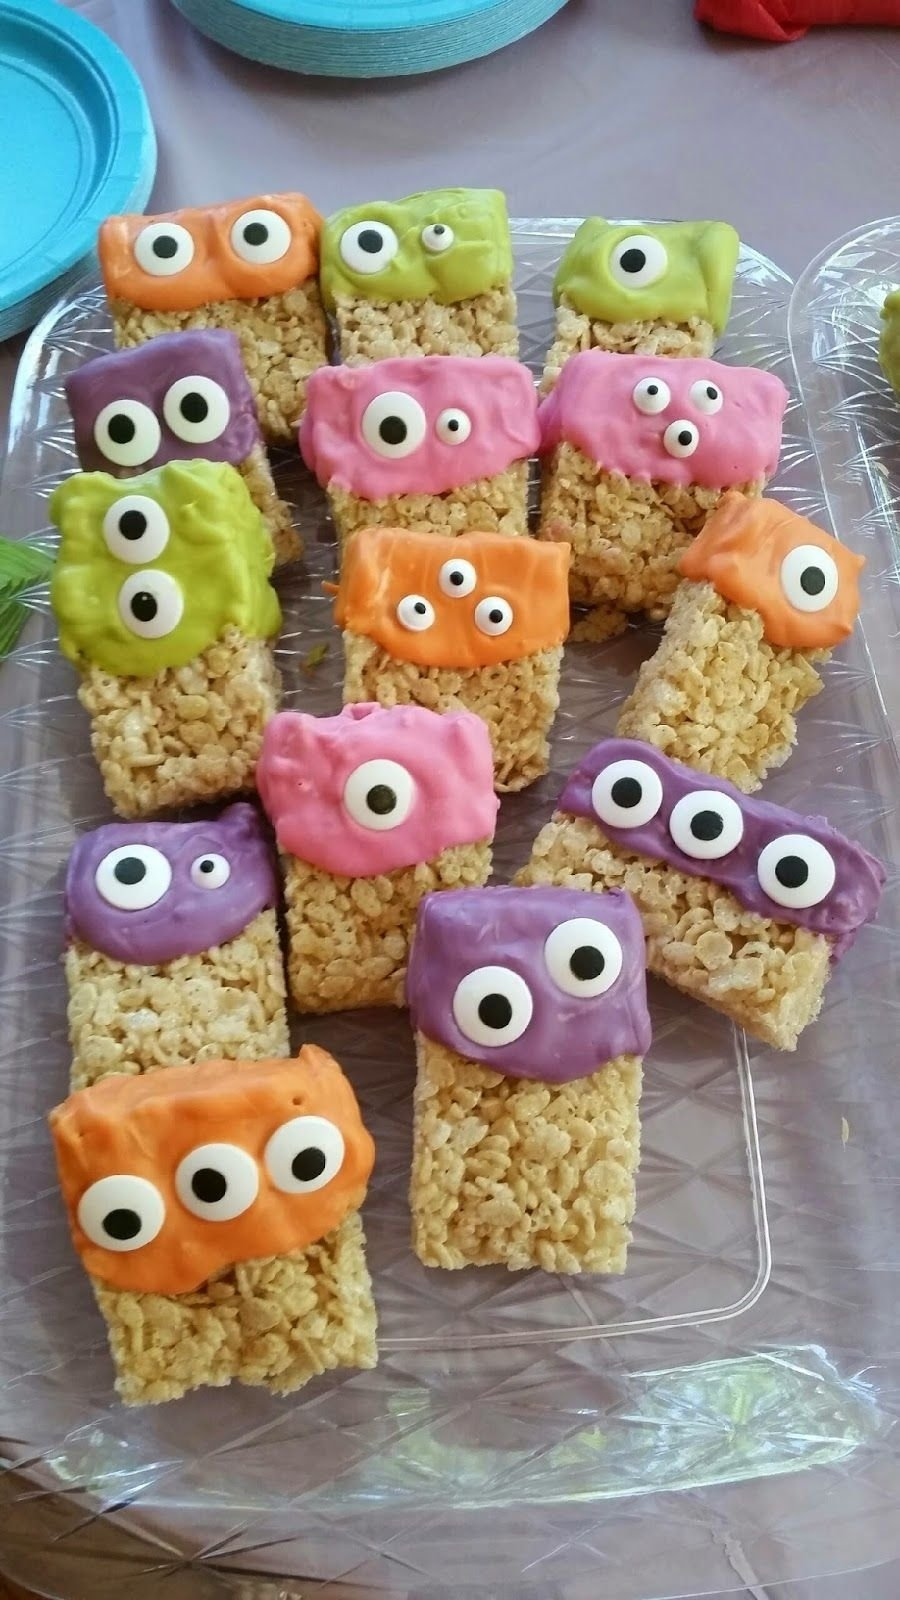 10 Attractive Halloween 1St Birthday Party Ideas monster rice krispies treats a little melting chocolate in 2020